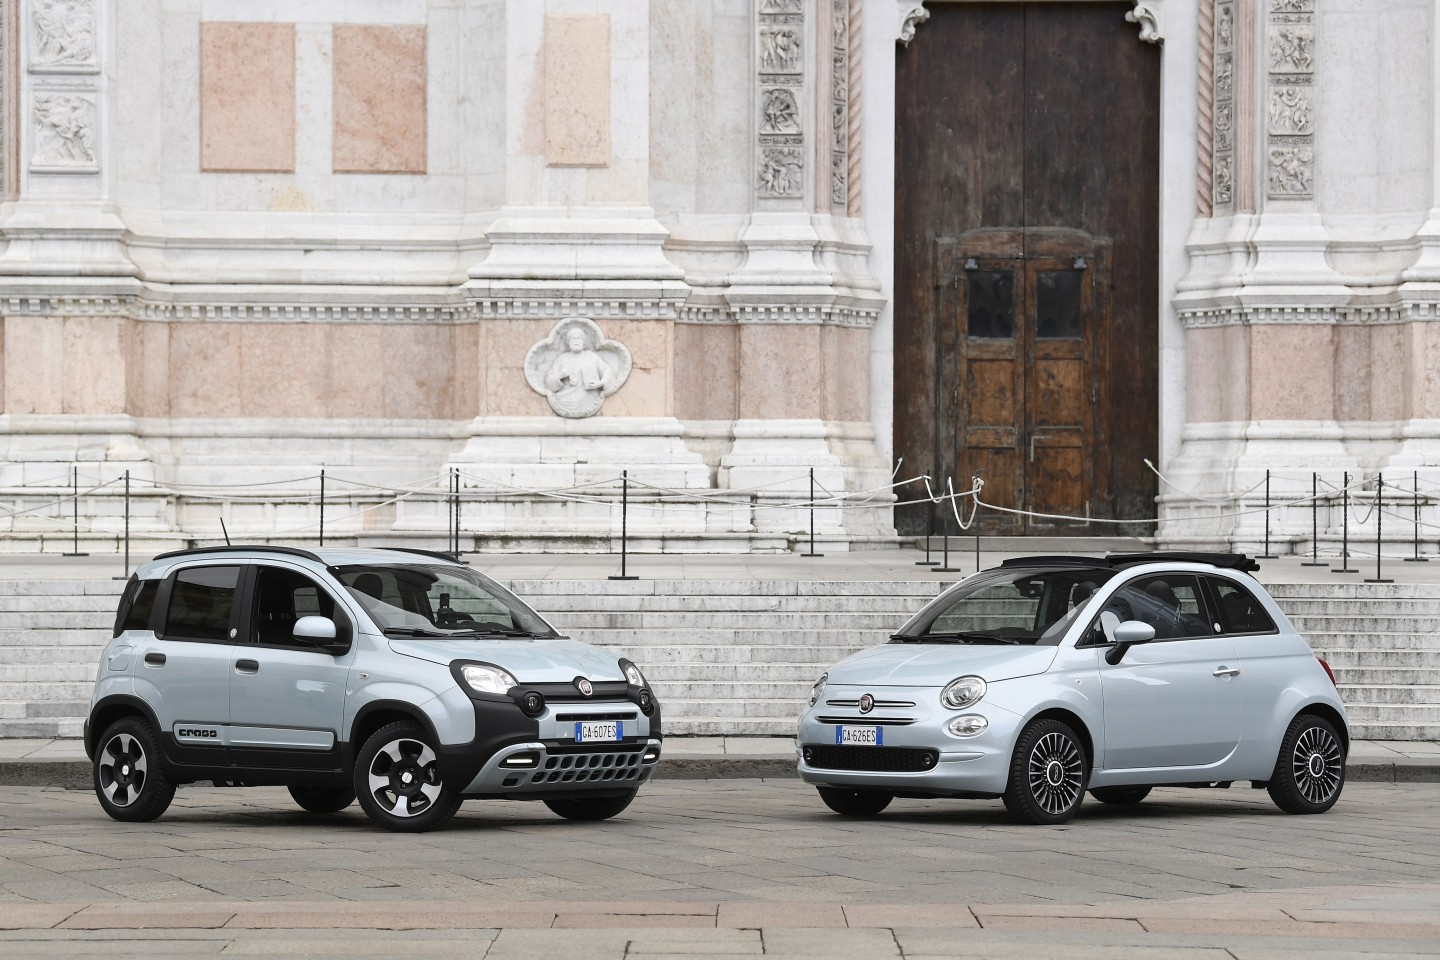 New Fiat Panda and Fiat 500 mild-hybrid cars are seen in piazza Maggiore, in Bologna, Italy, on 4 February 2020. Fiat Chrysler had met with serious problems when importing auto parts from China. (Flavio Lo Scalzo/Reuters)